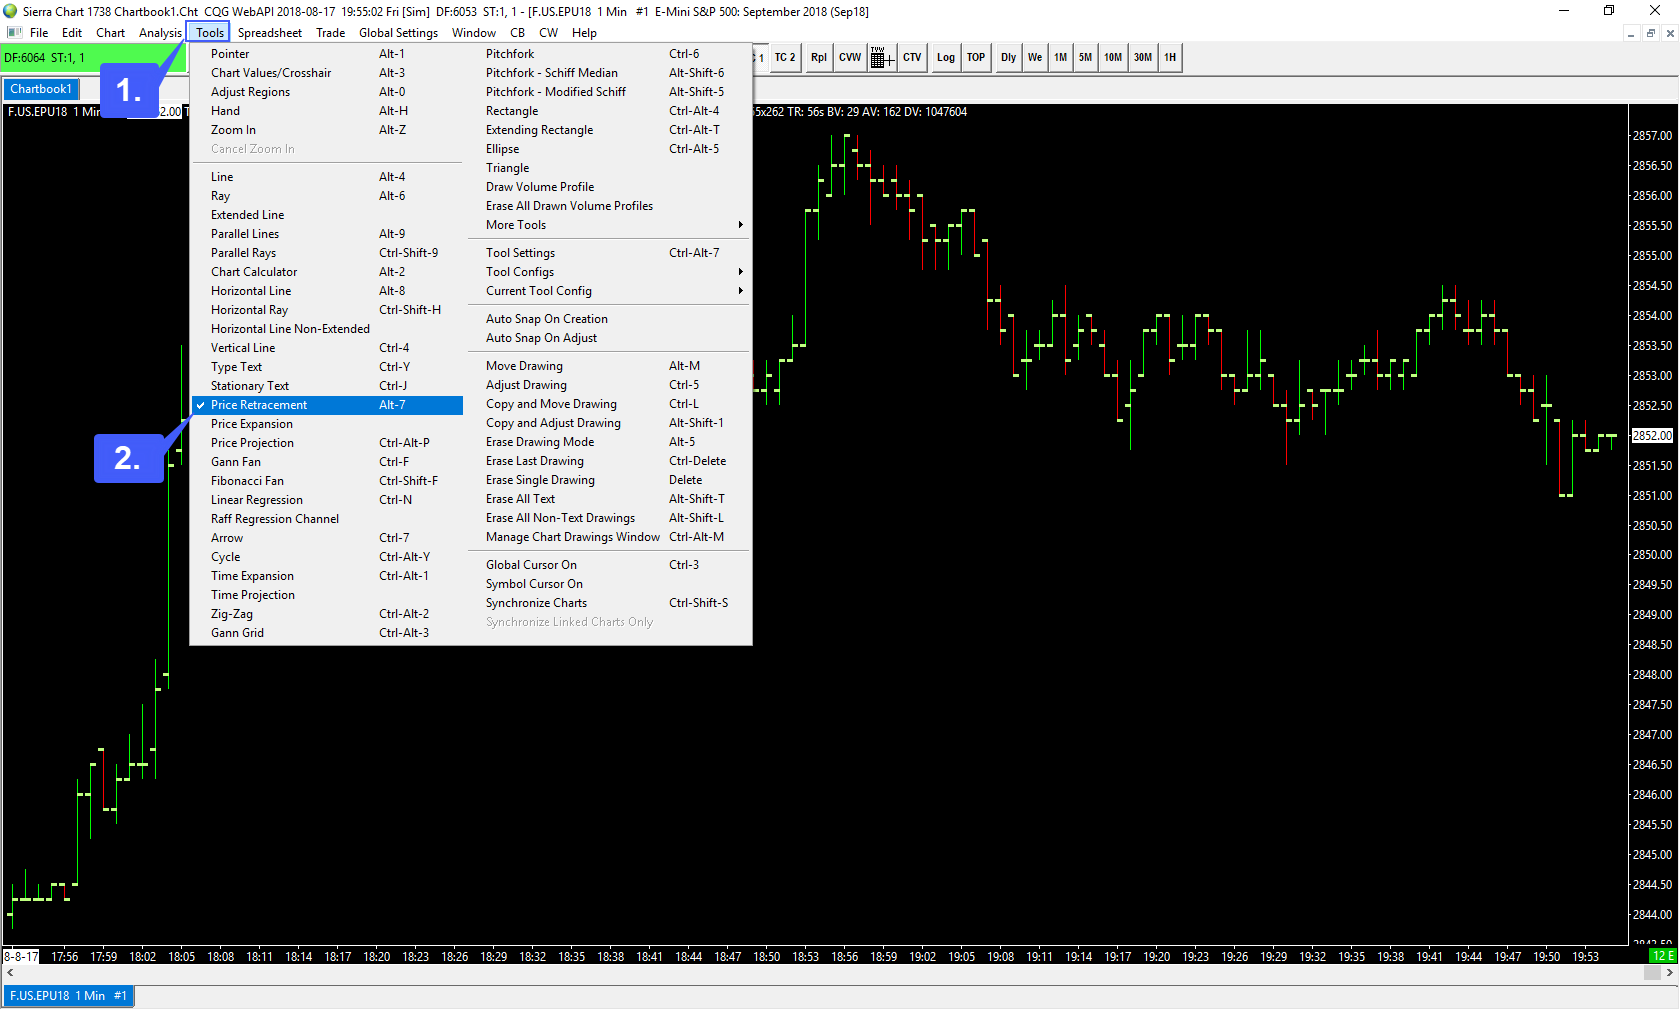 Does Sierra Chart provide traders with the ability to draw